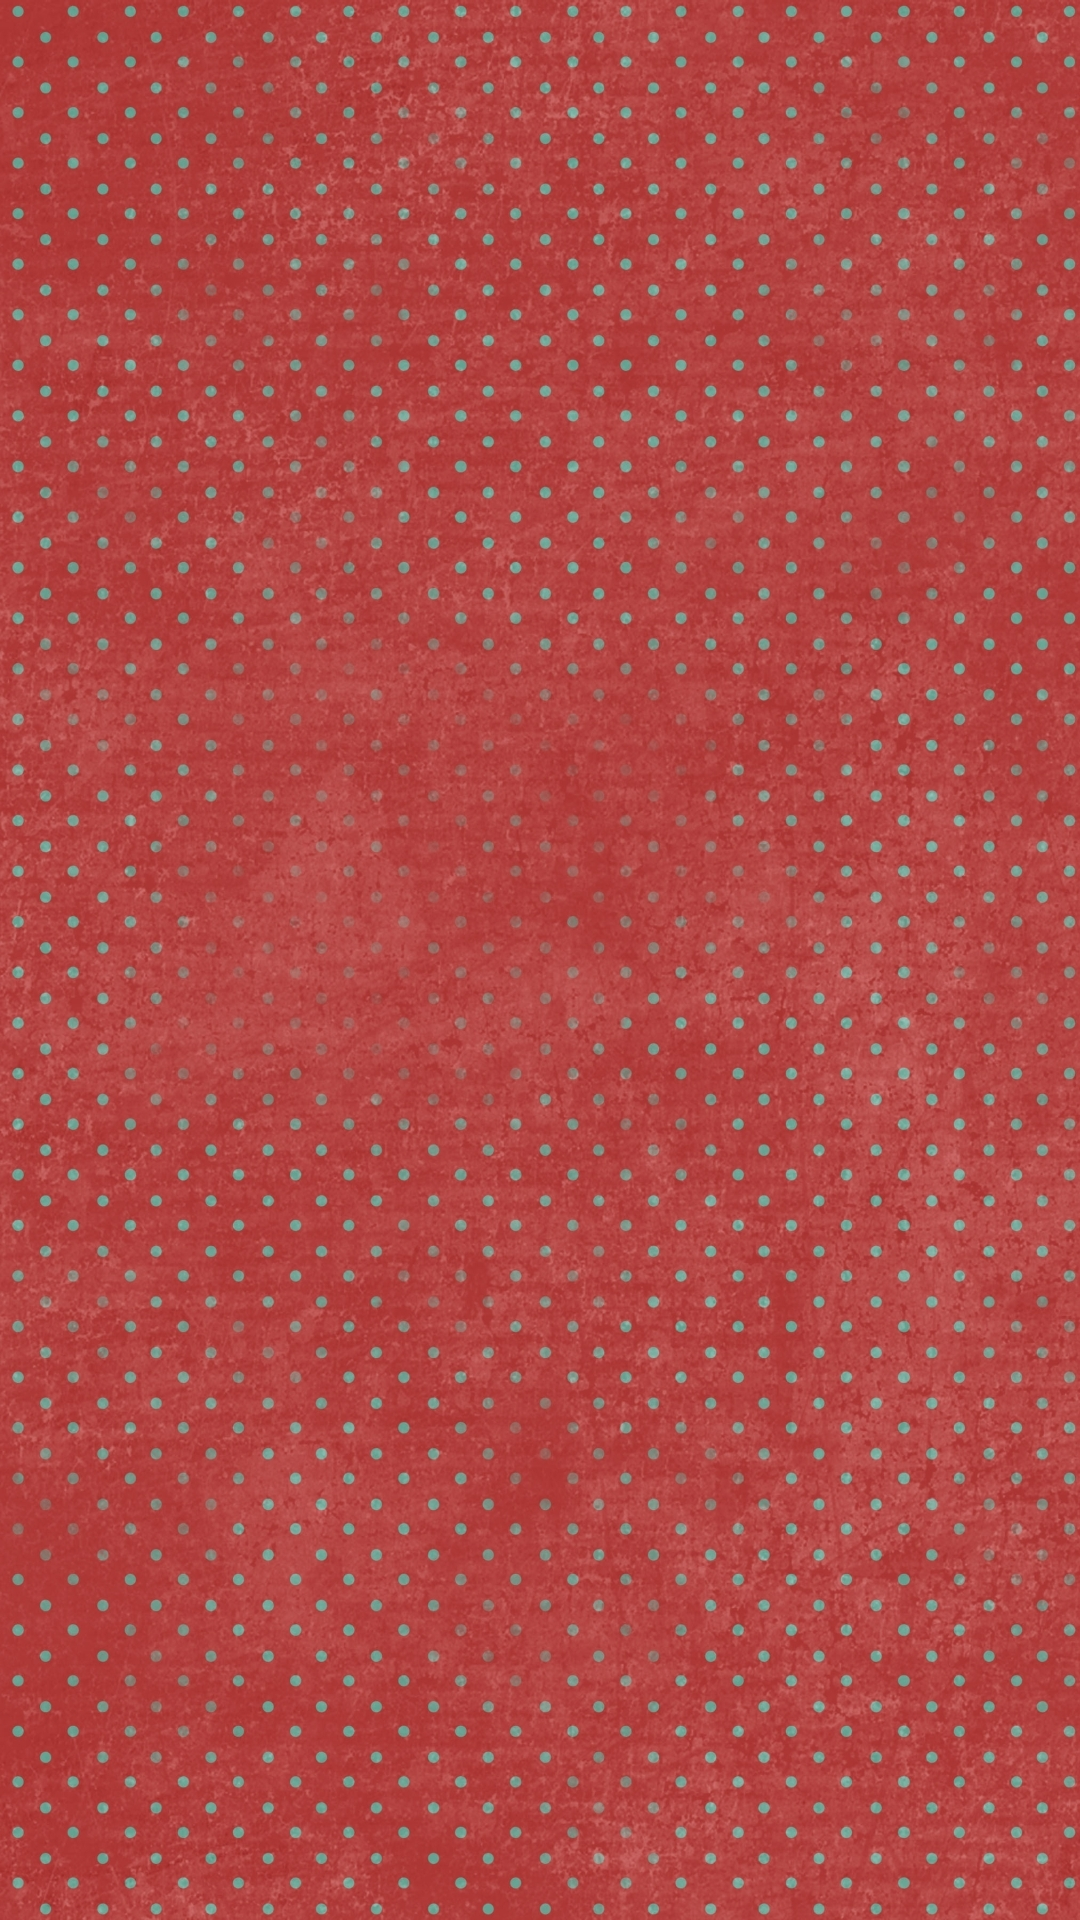 iPhone 6 Plus Wallpaper Red Pattern 02 iPhone 6 Wallpapers 1080x1920